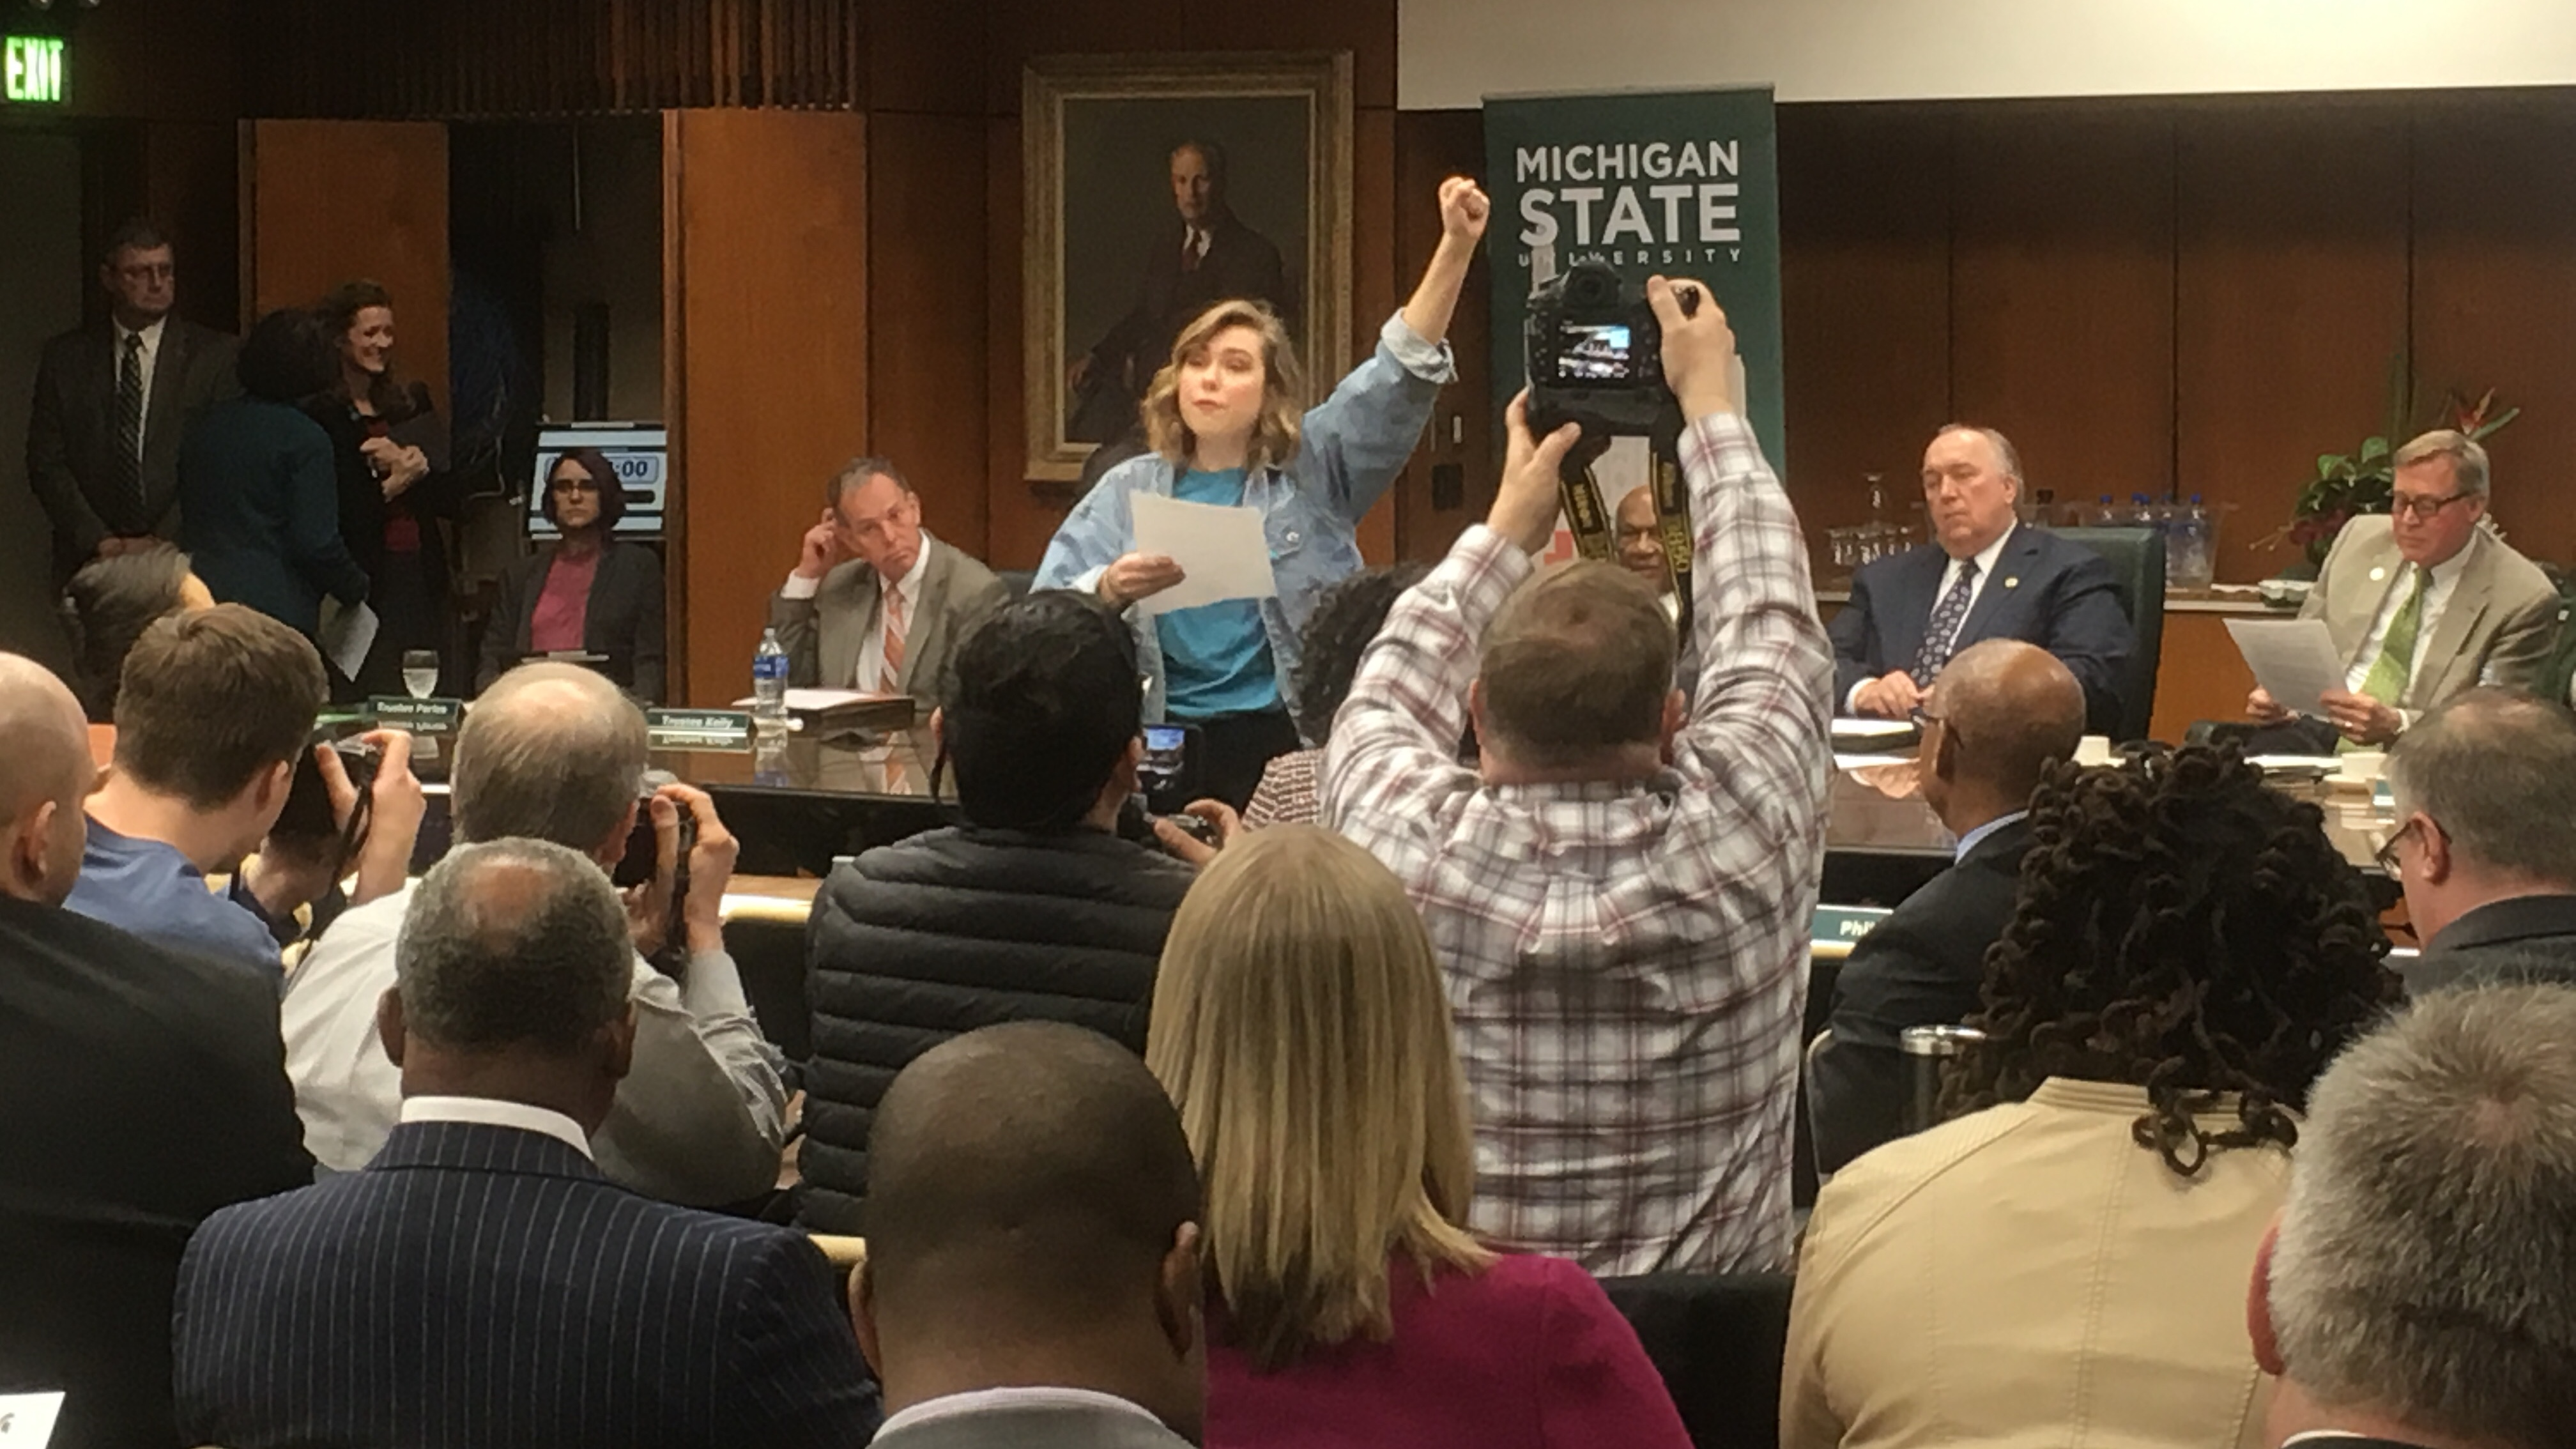 Current state wkar protesters criticize msu administration at board meeting sciox Choice Image